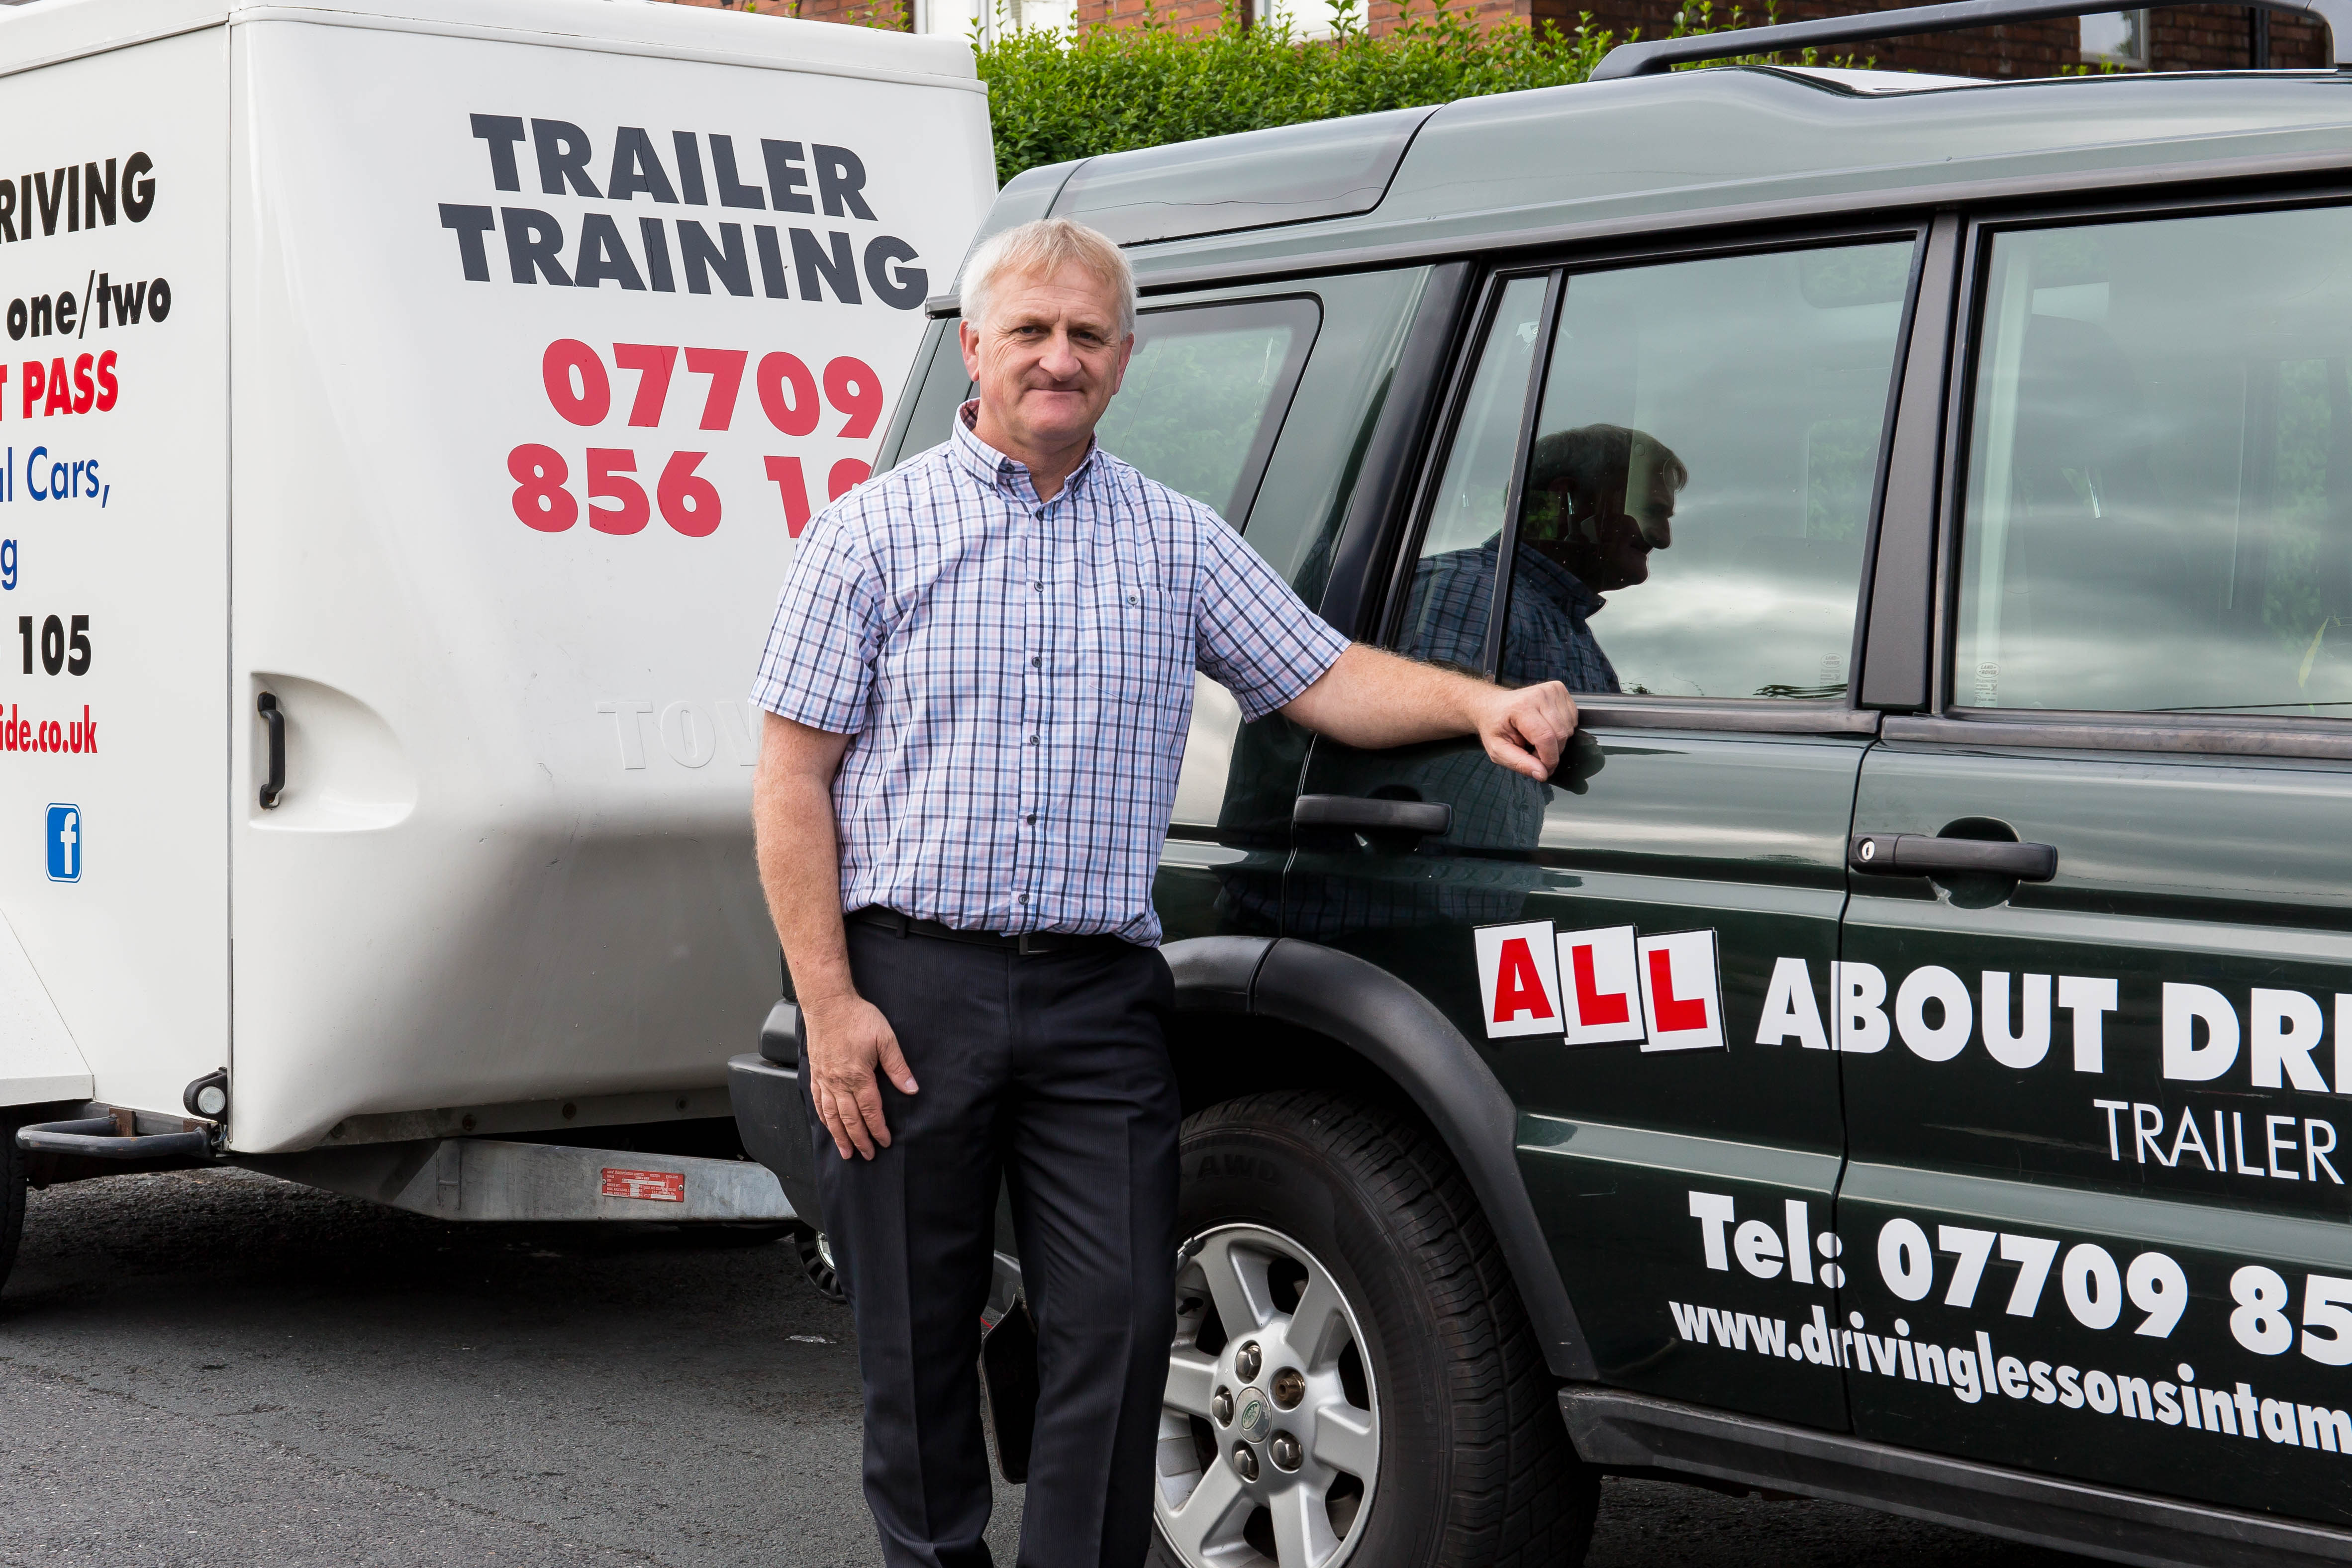 Car and Trailer Training Tameside